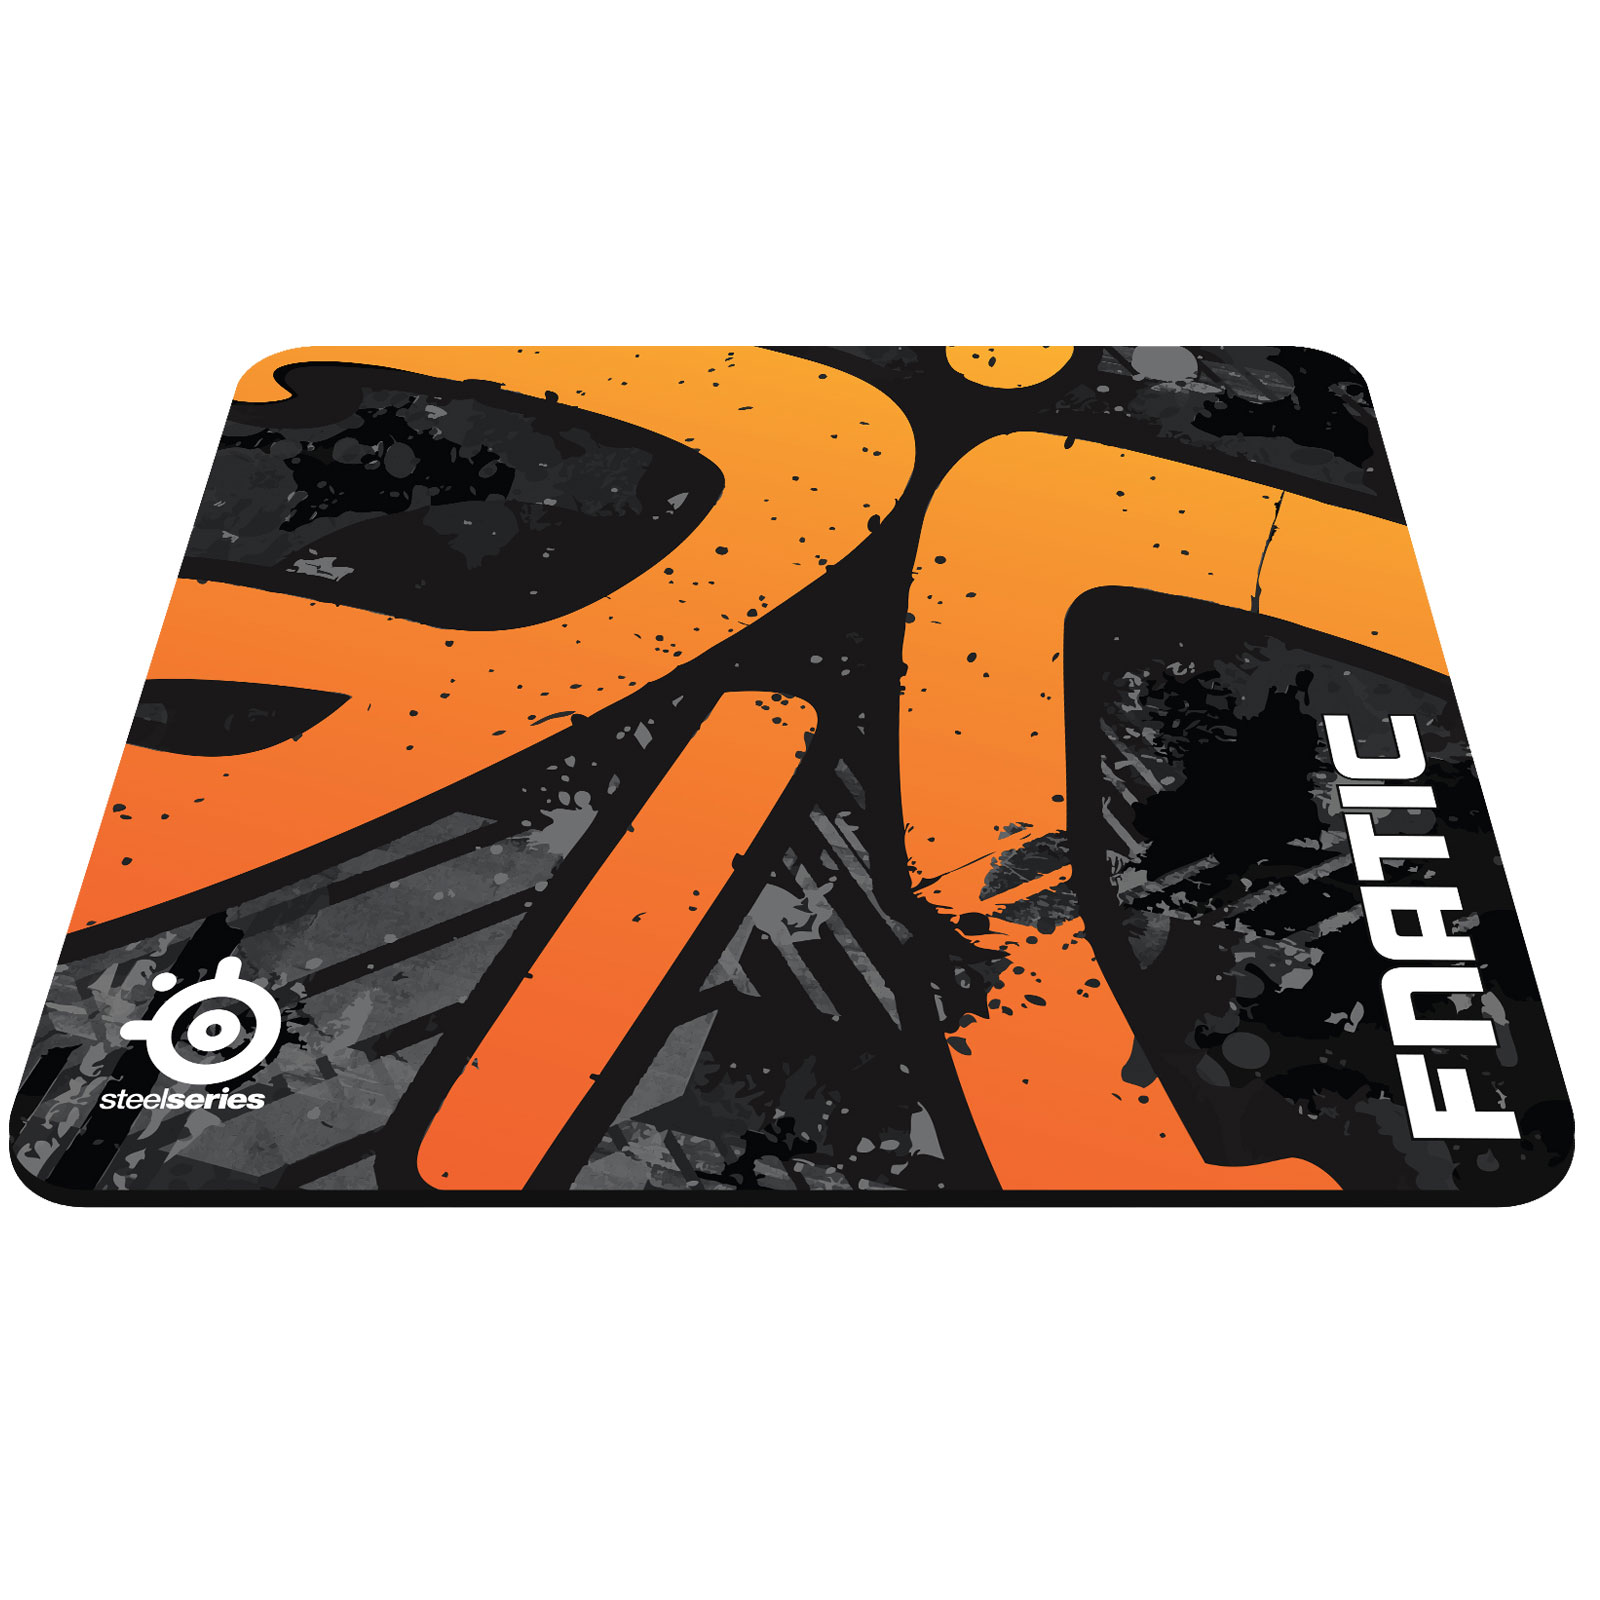 Steelseries qck edition limit e fnatic asphalt edition tapis de souris steelseries sur - Steelseries tapis de souris ...